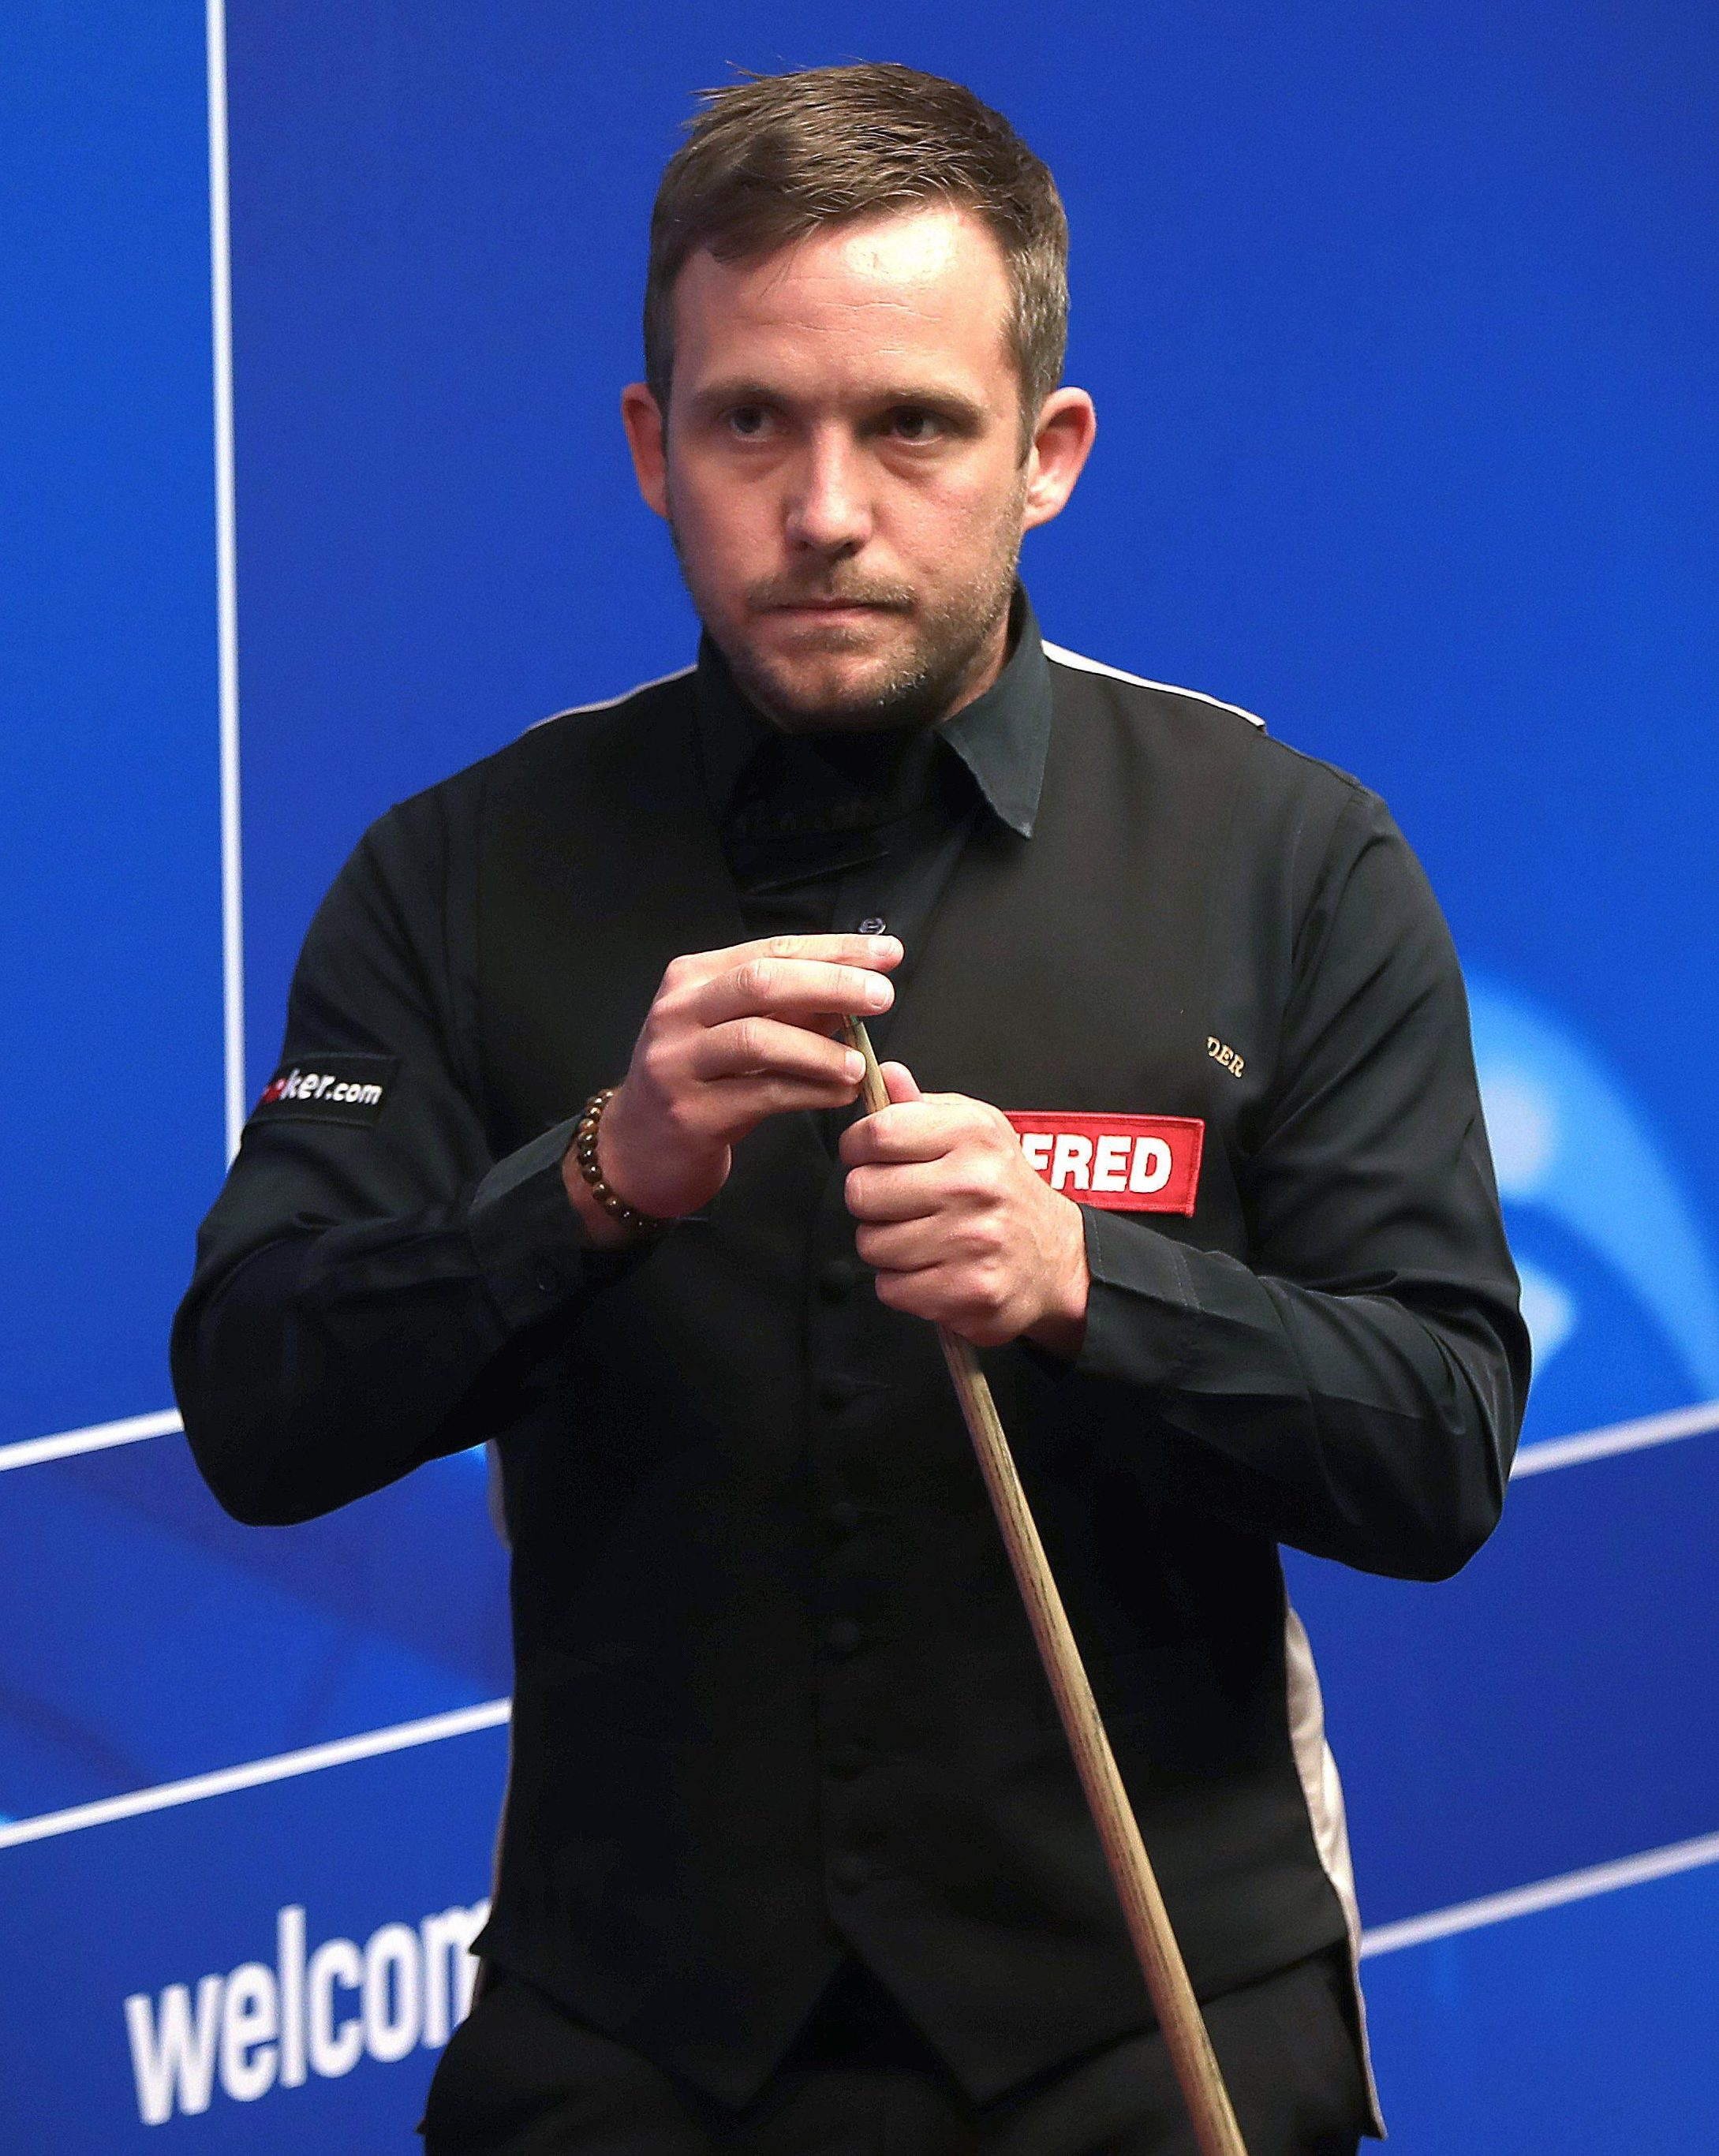 Jamie Jones has been suspended from the World Snooker Tour over match-fixing allegations